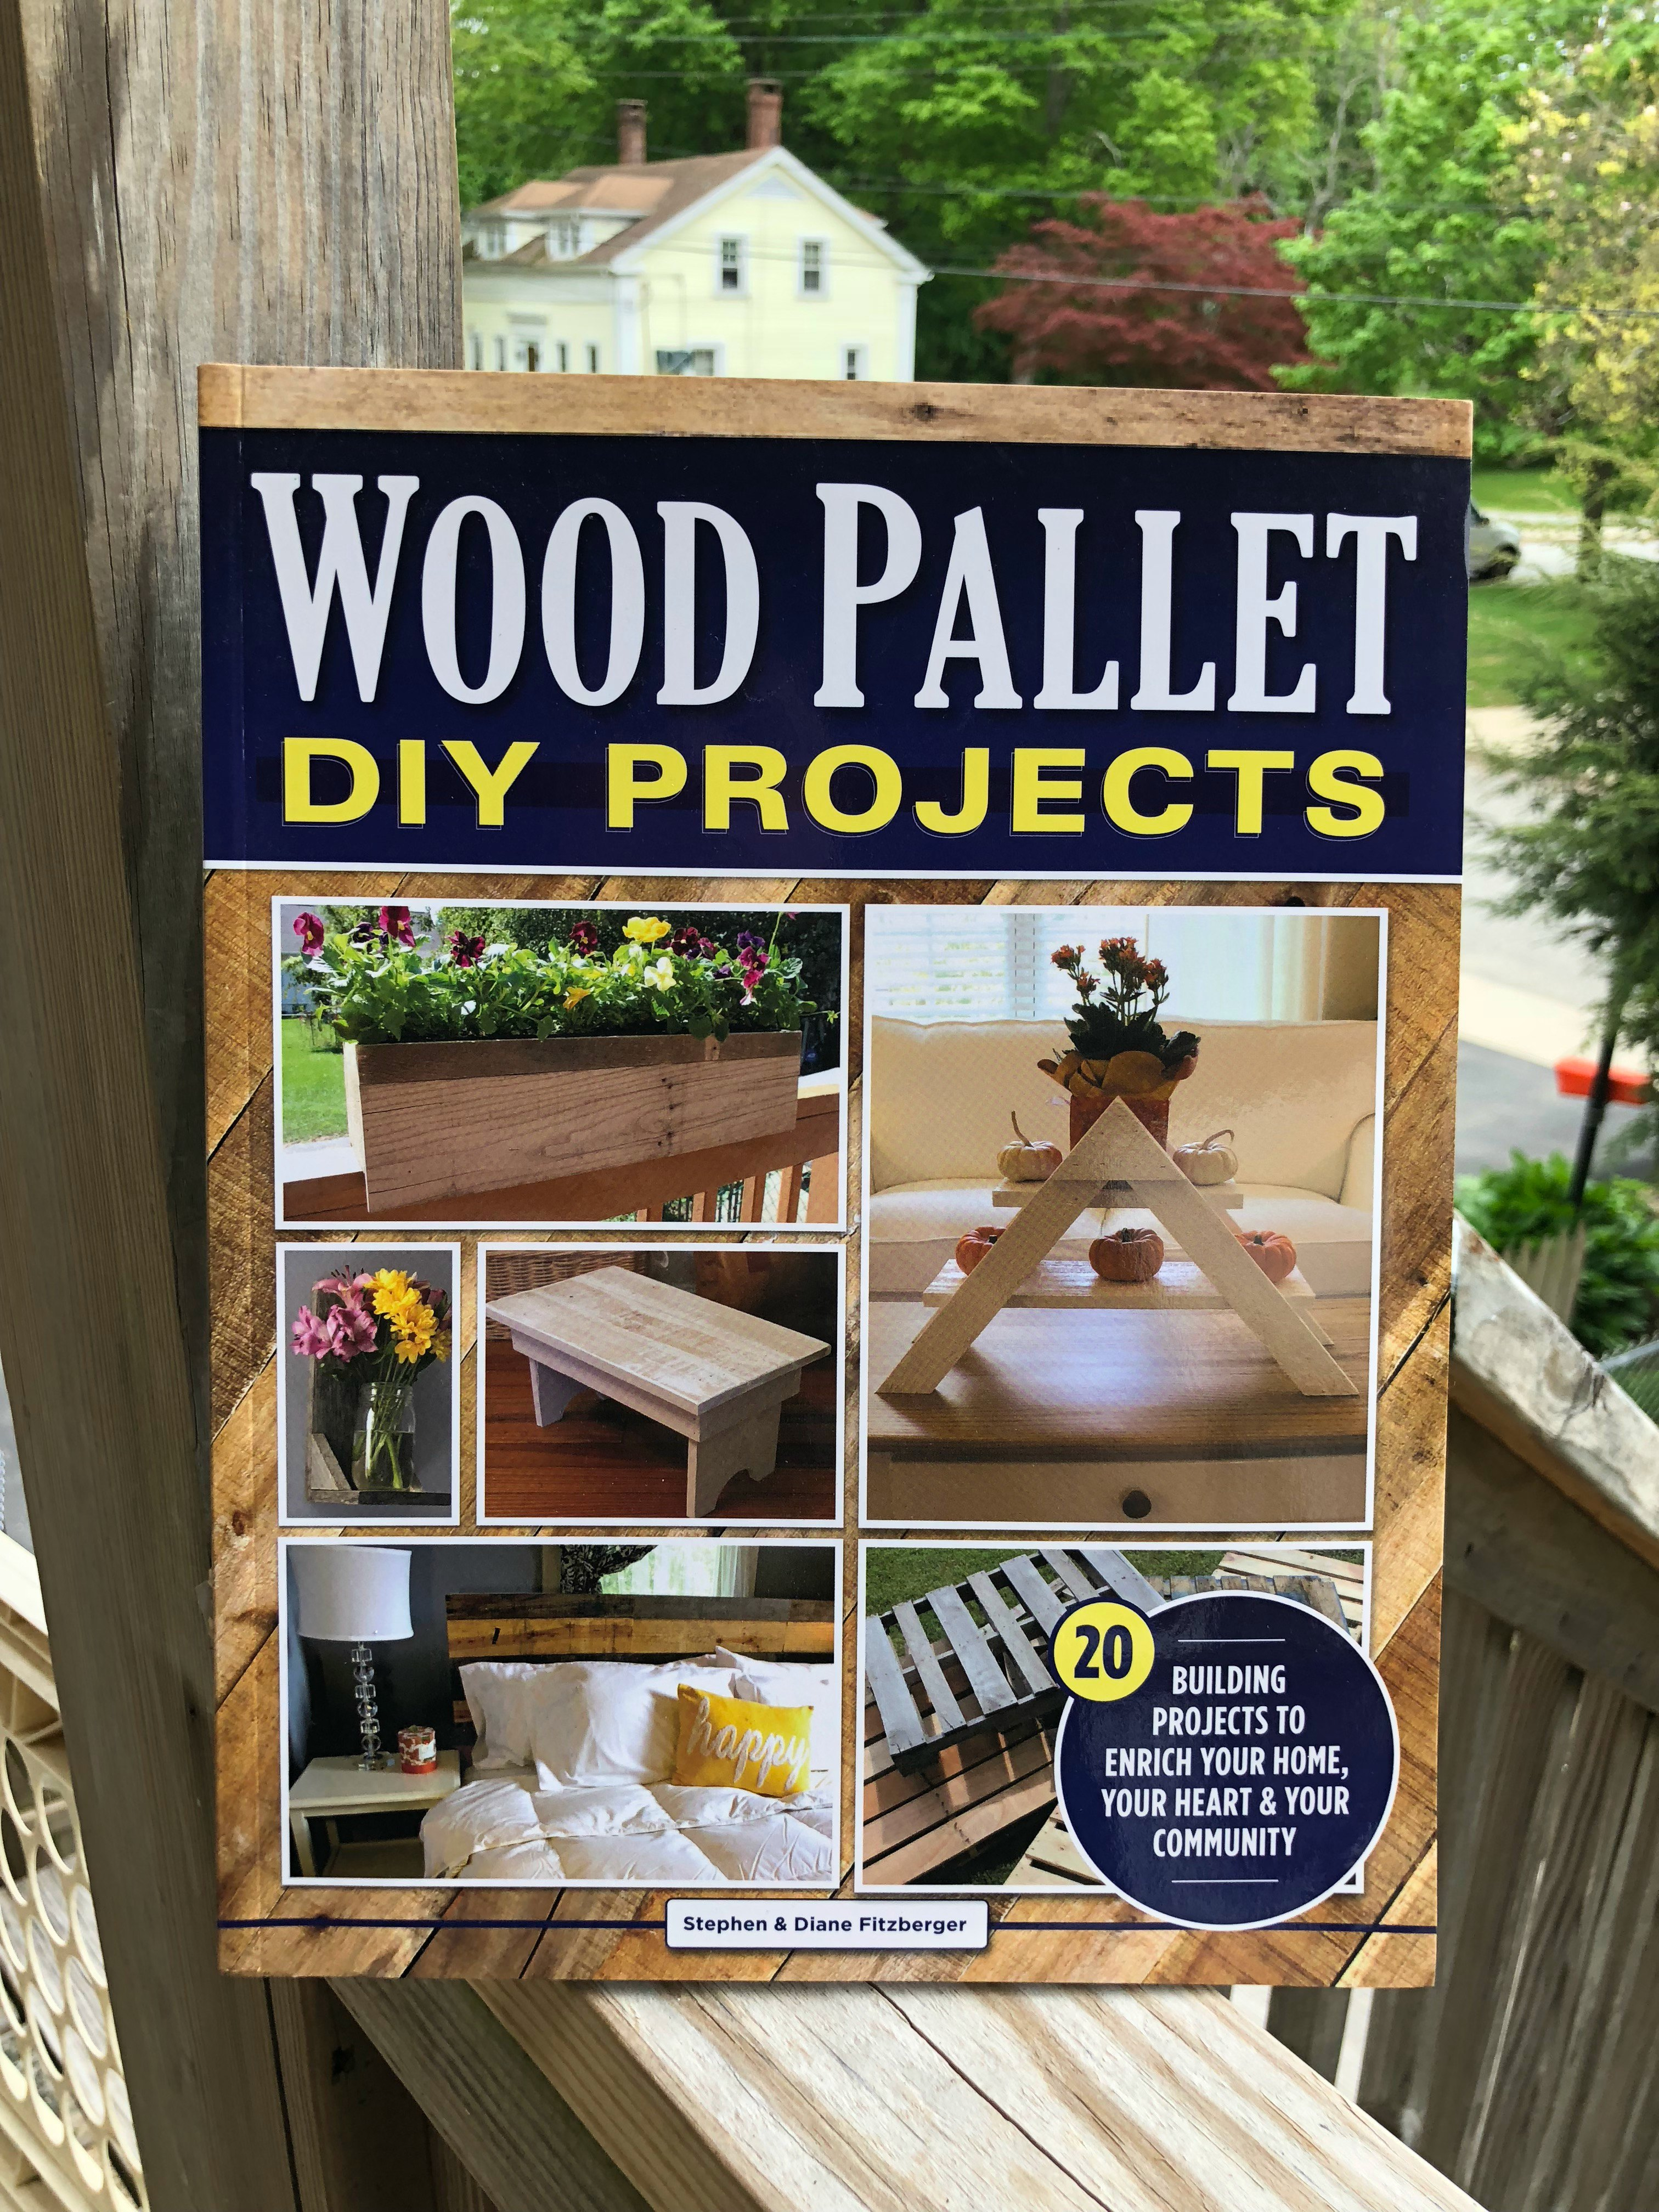 Wood Pallet Diy Projects The Stuff Of Success